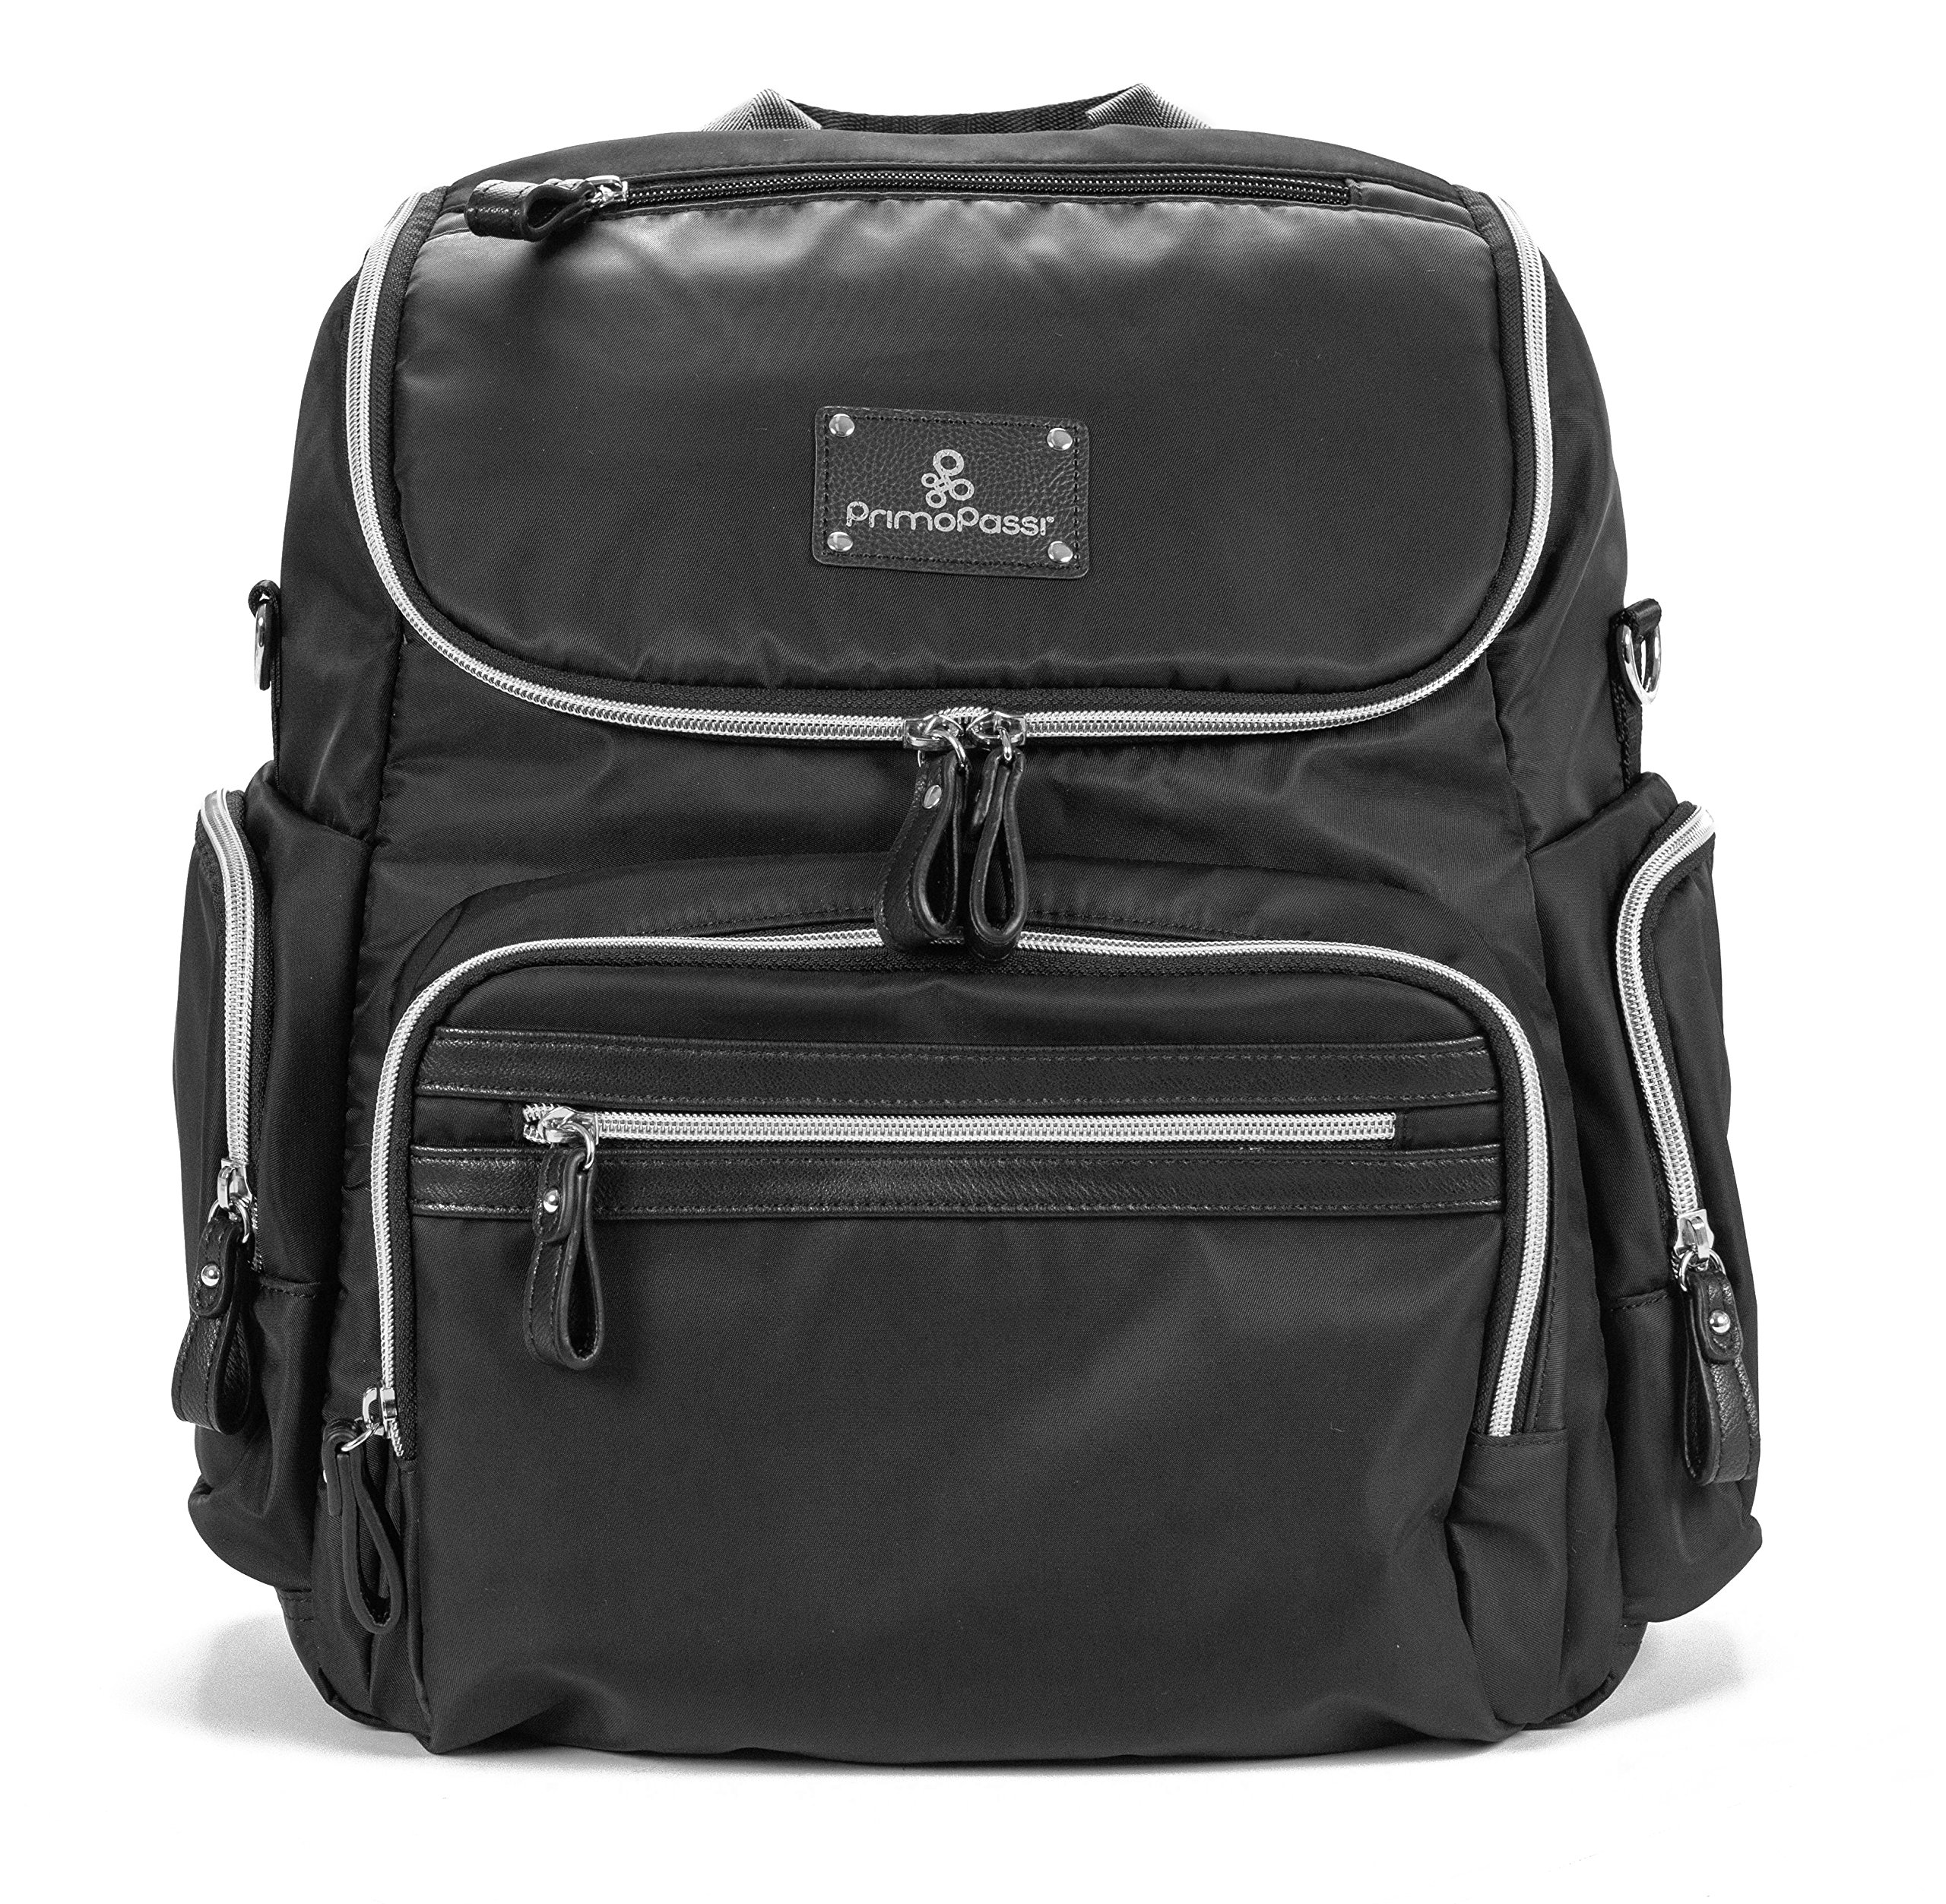 Primo Passi Vittoria Large Capacity Diaper Bag Multifunction Travel Backpack For Babies W/Changing Pad I Adjustable I Insulated Pockets I Black